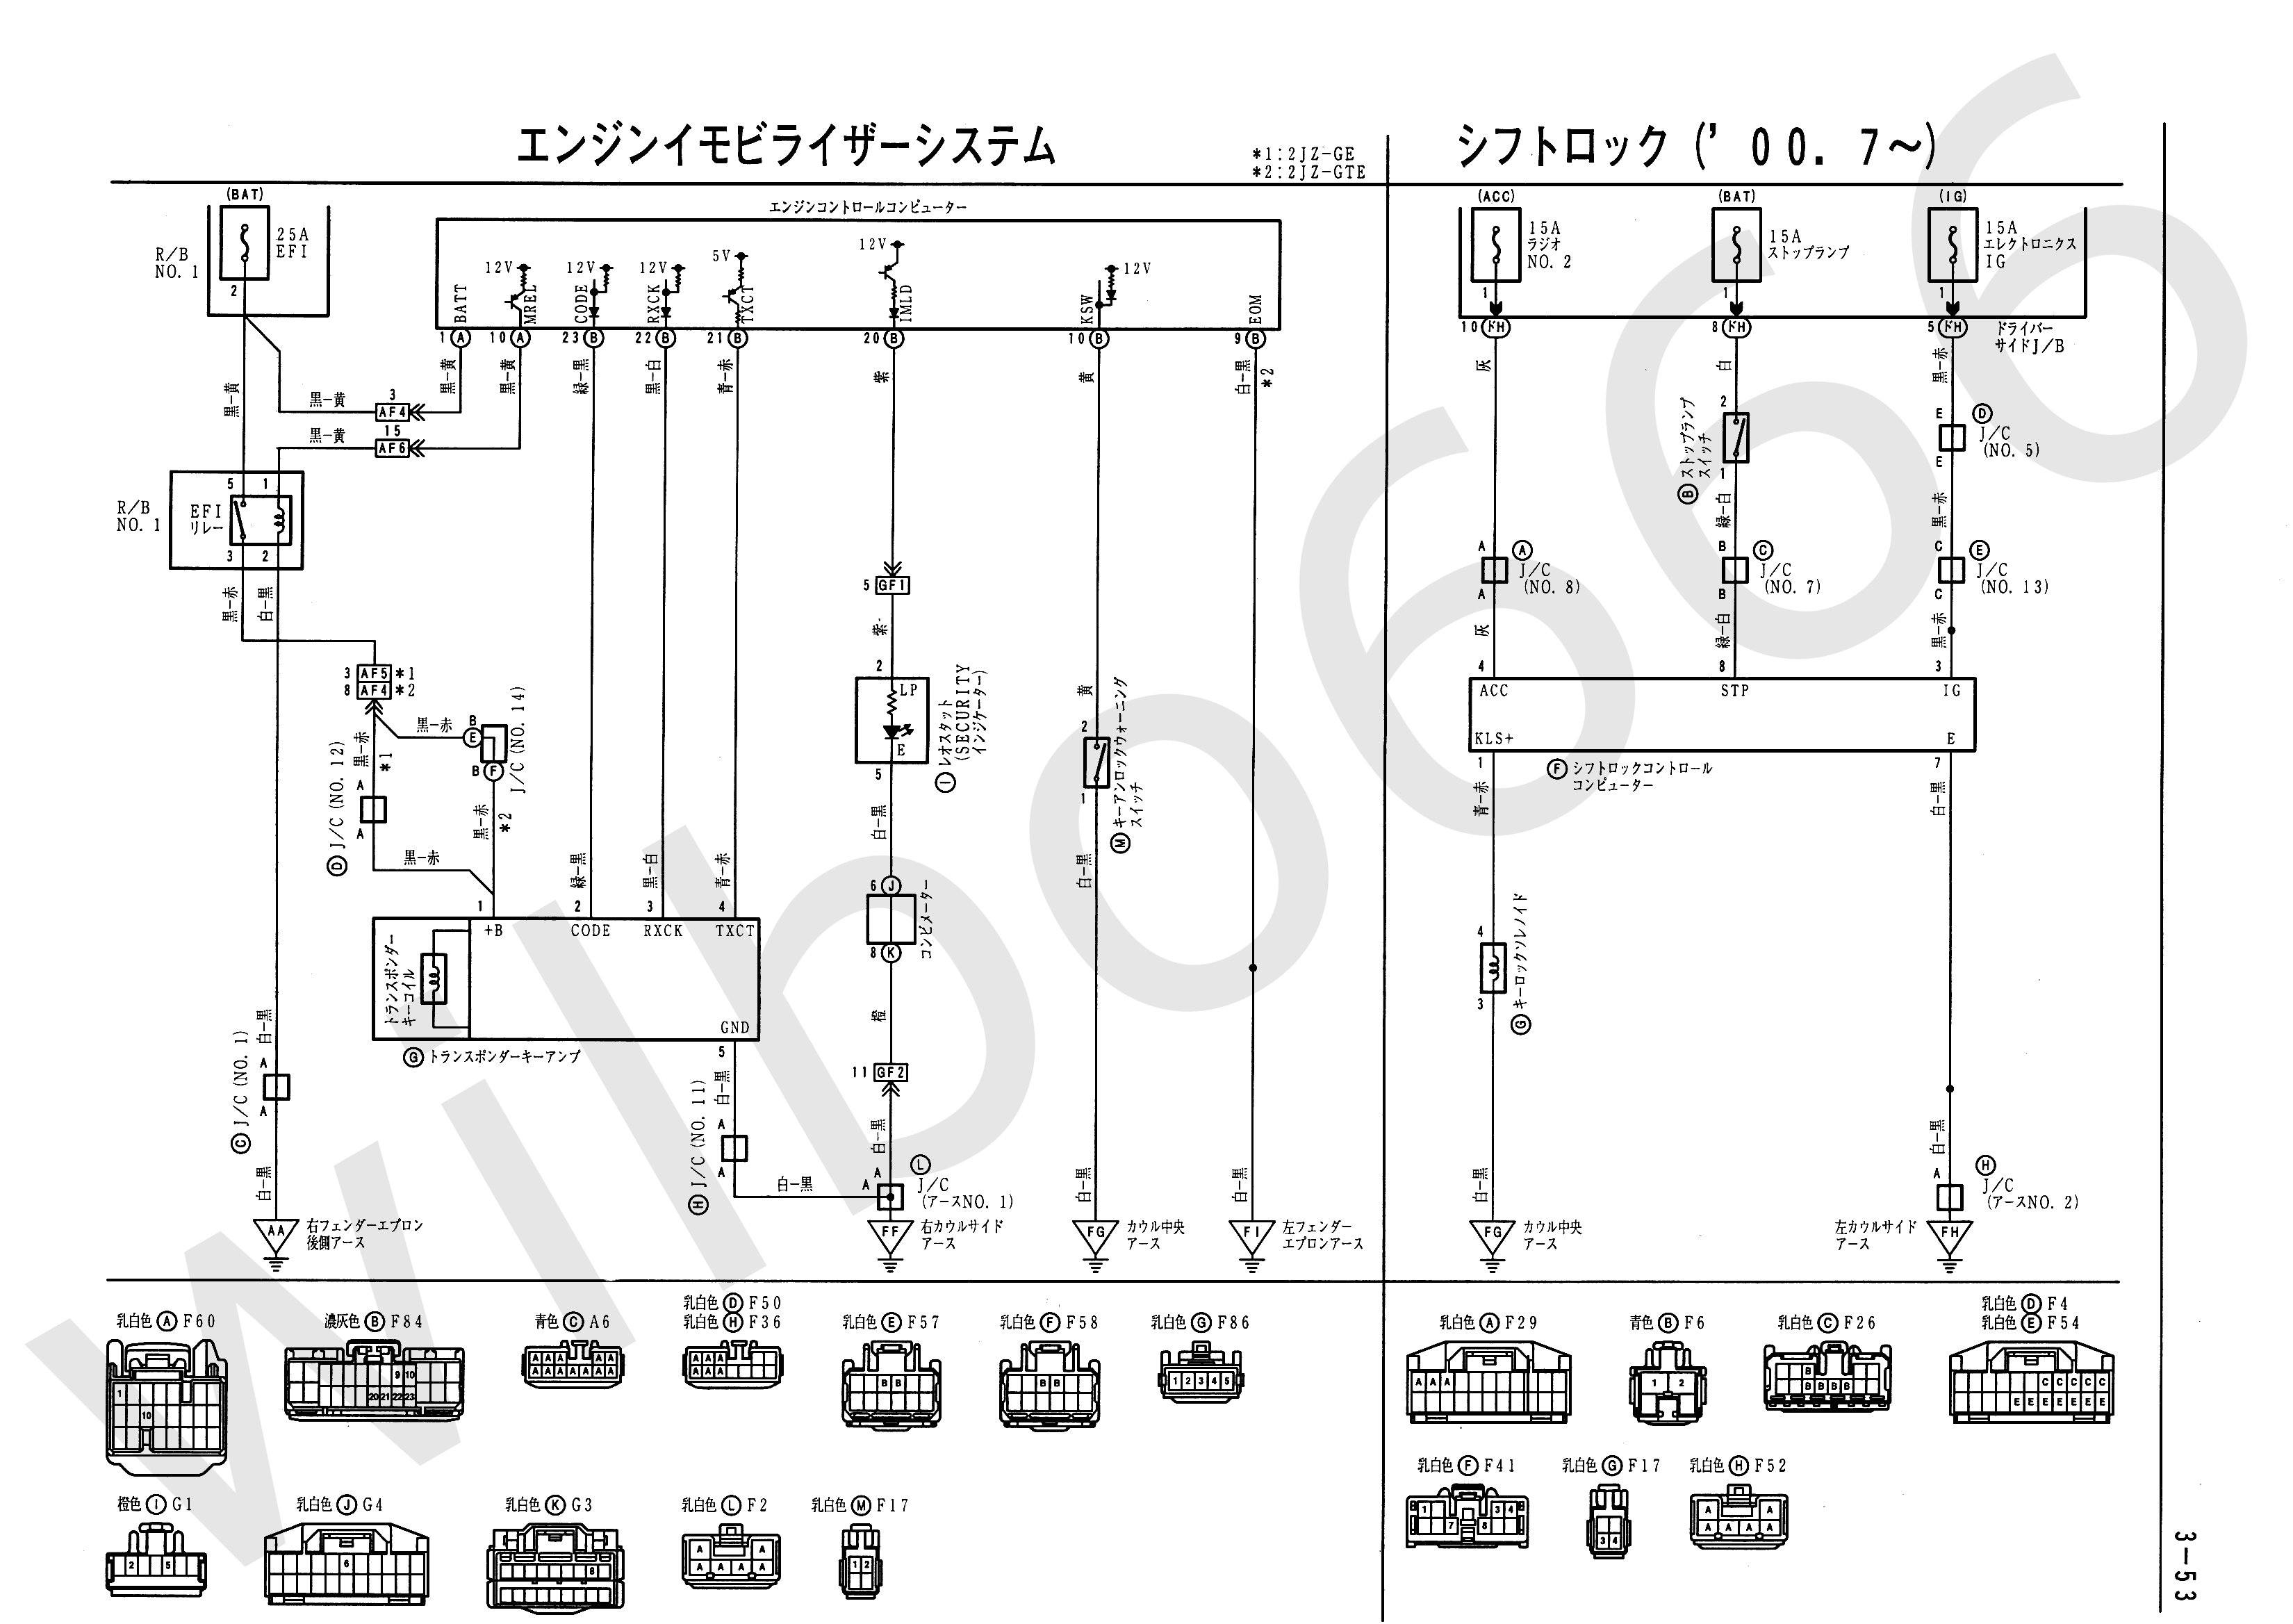 t max winch wiring diagram with Index Php on Index php moreover Warn M8000 Winch Wiring Diagram besides How To Read Electrical Wiring Diagrams further T Max Winch Remote Wiring Diagram besides Warn Winch Wiring Diagram 3 Wire.